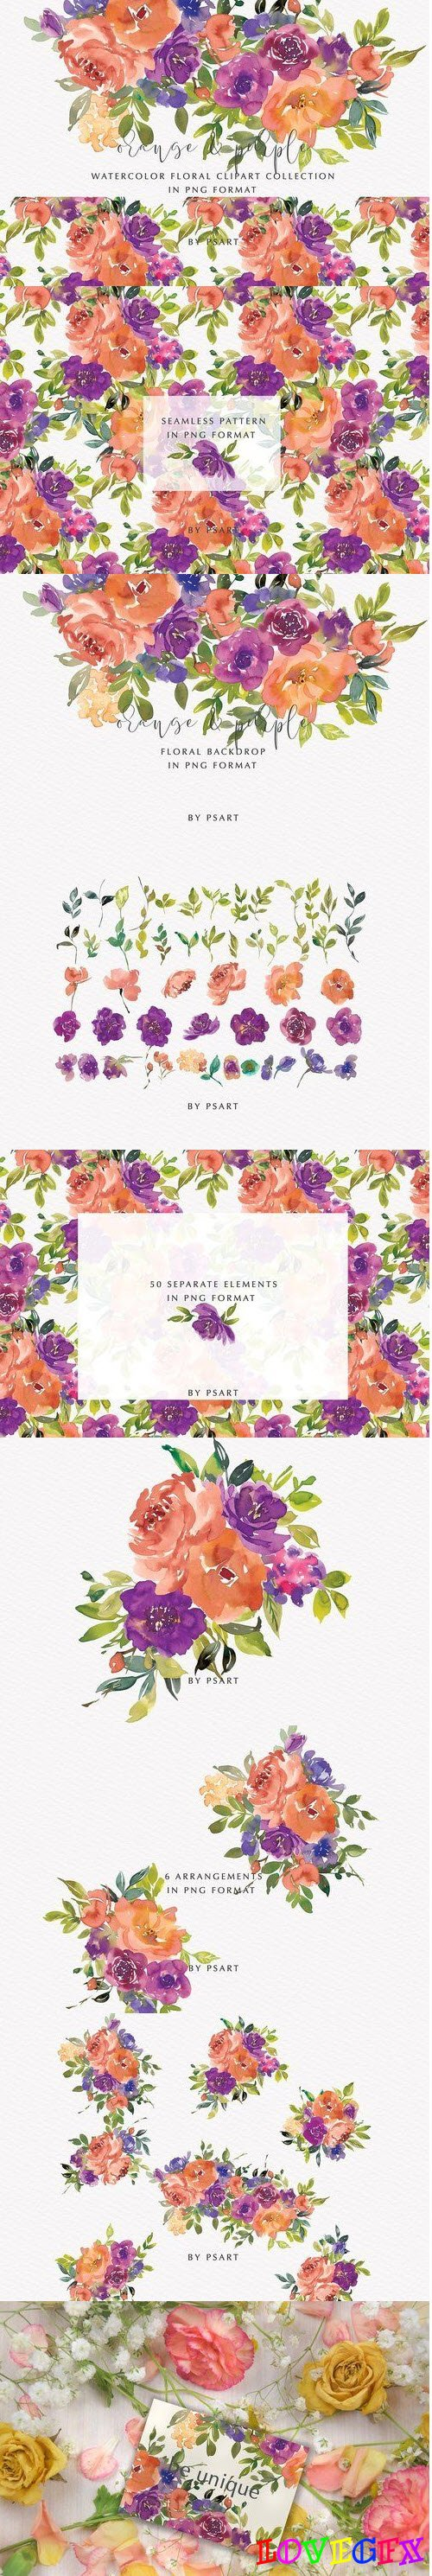 Orange Purple Watercolor Clipart - 4445708